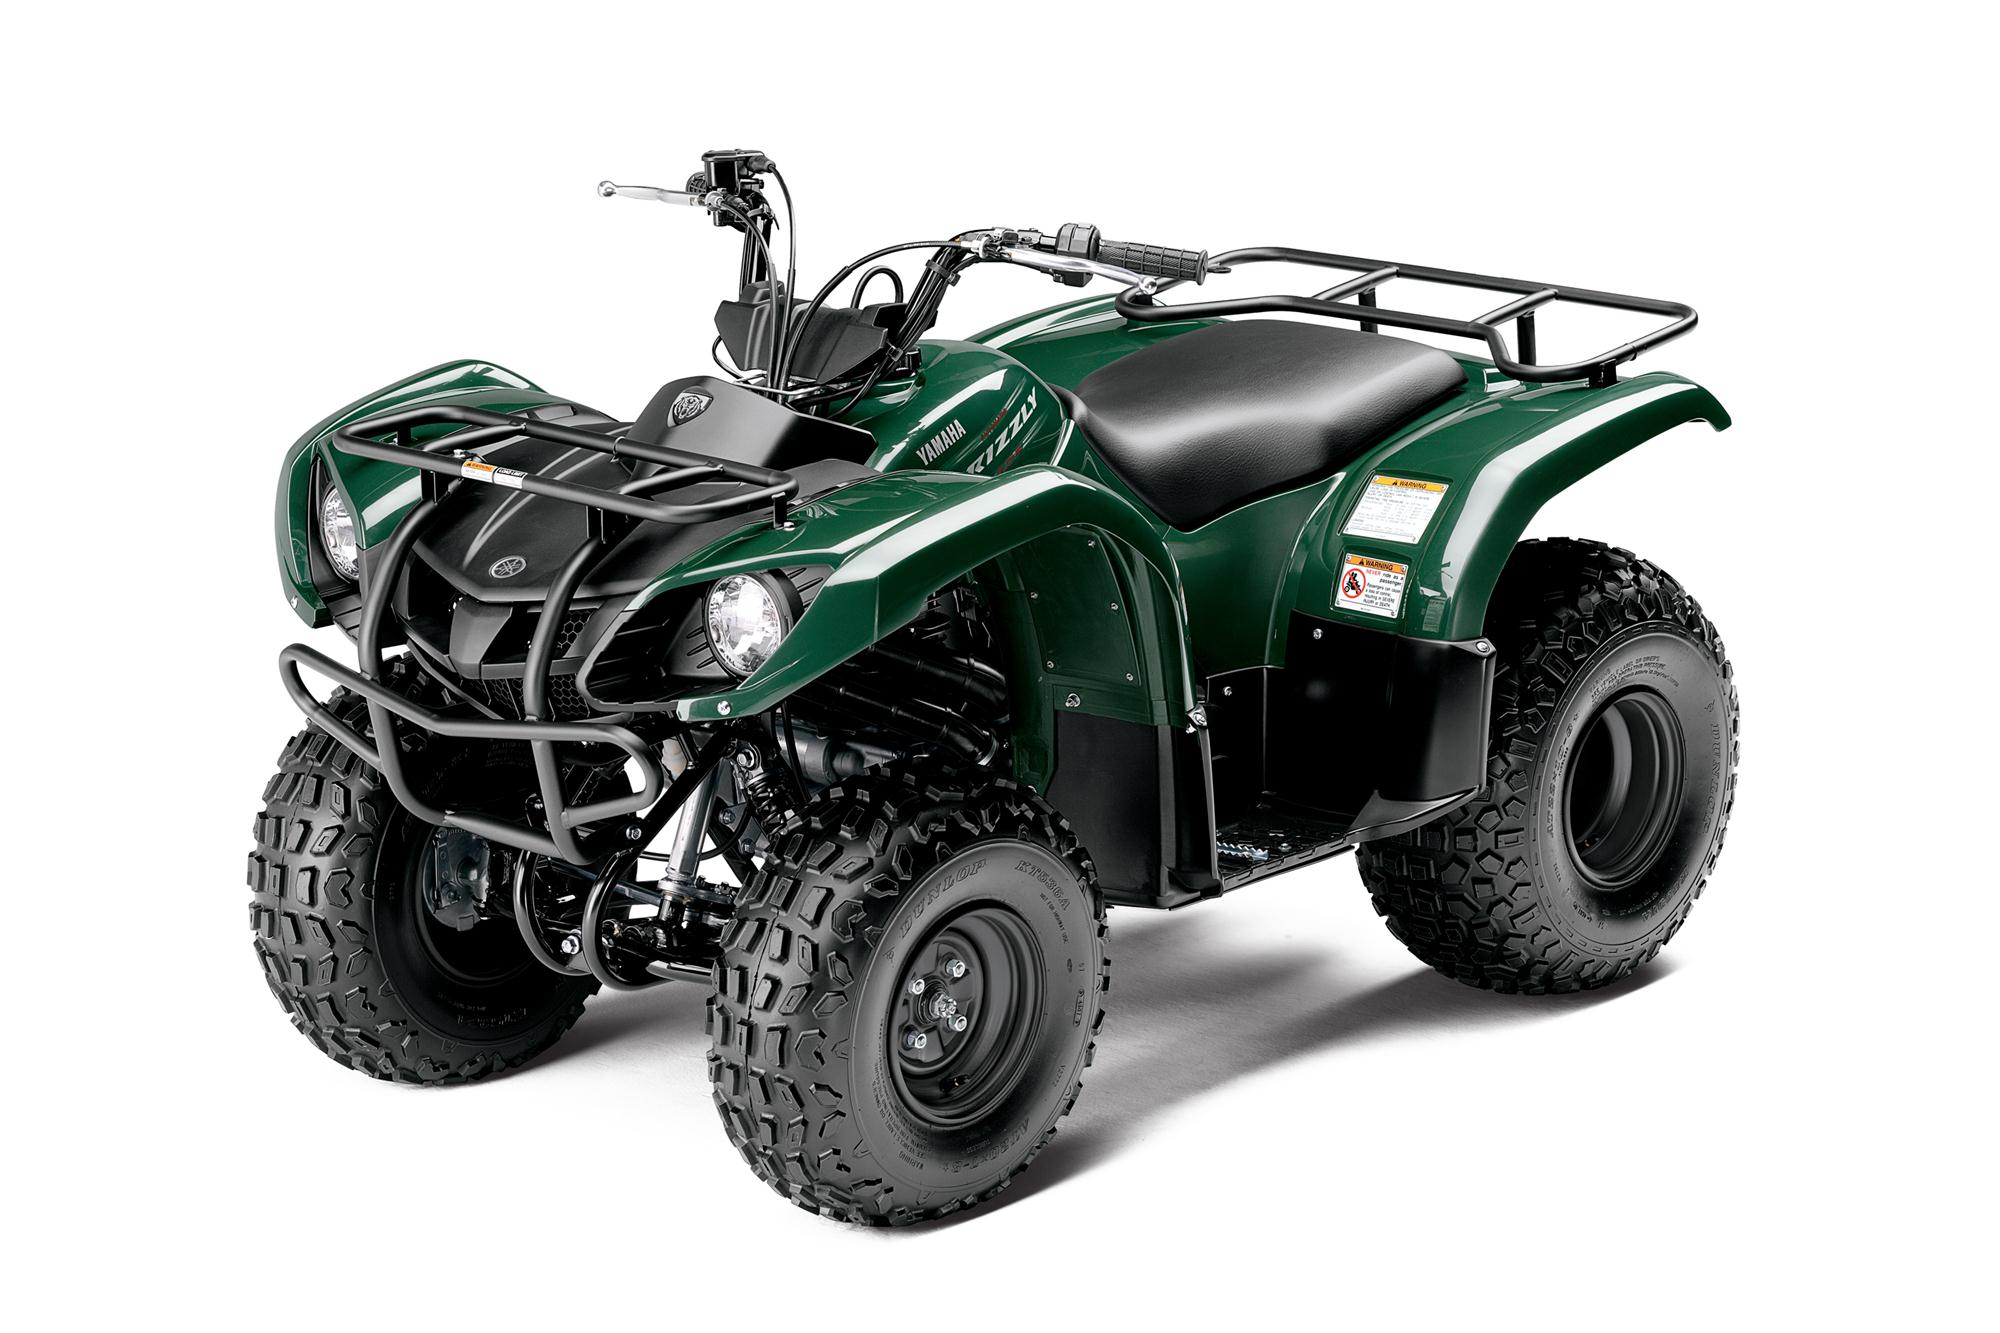 2013 yamaha grizzly 125 automatic the easy way to for Yamaha grizzly atv